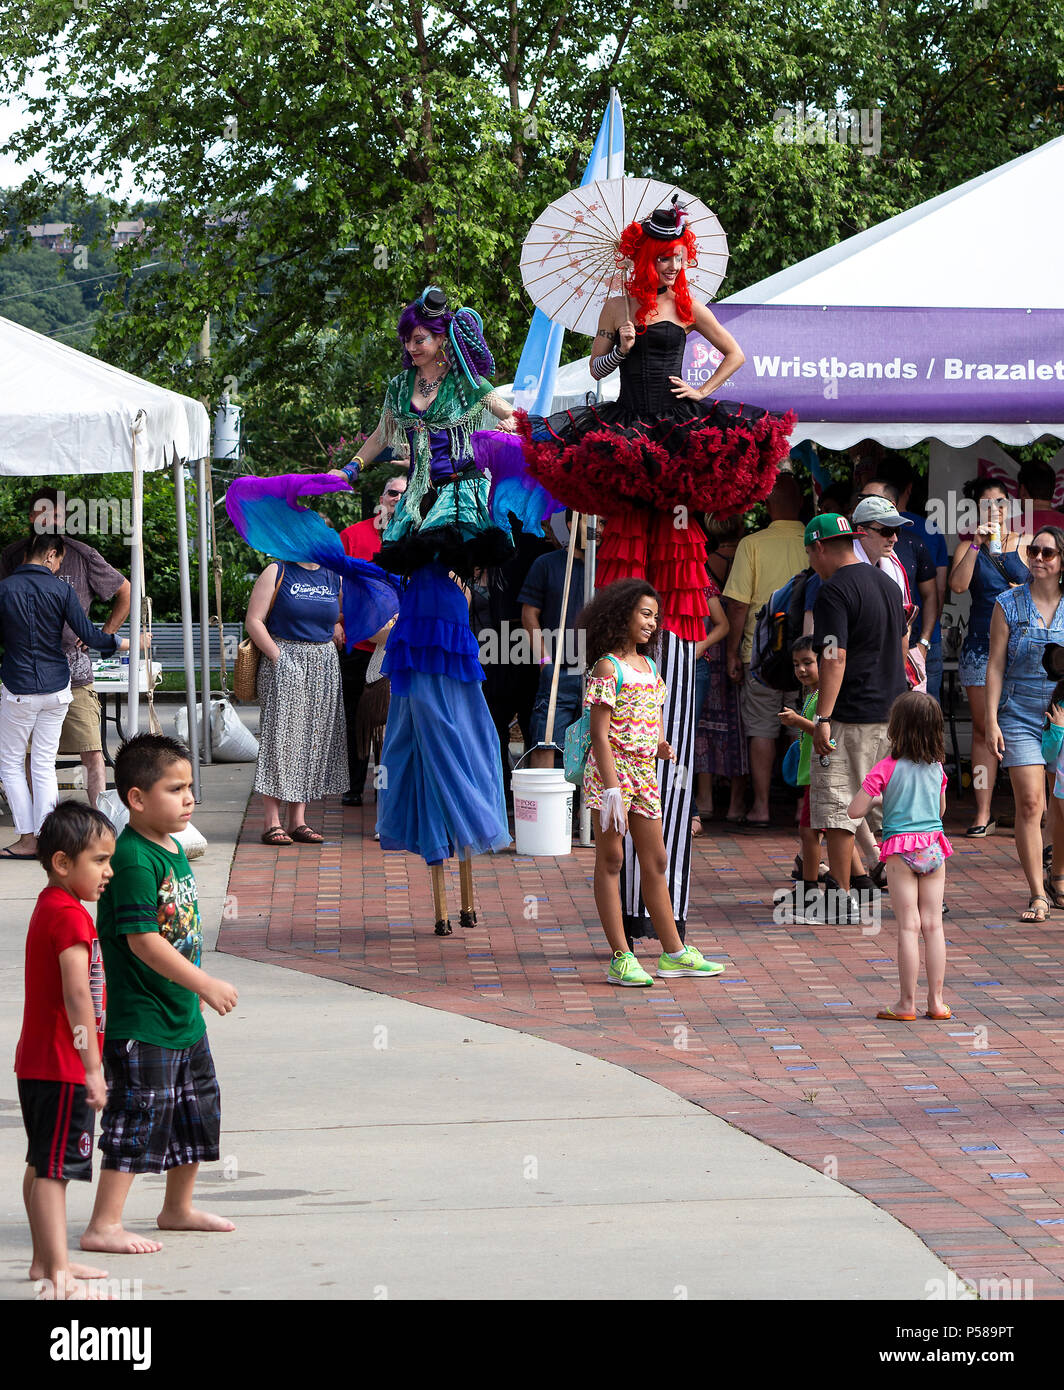 Two women on stilts overlook festival goers at Hola Carolina Asheville in NC, USA - Stock Image